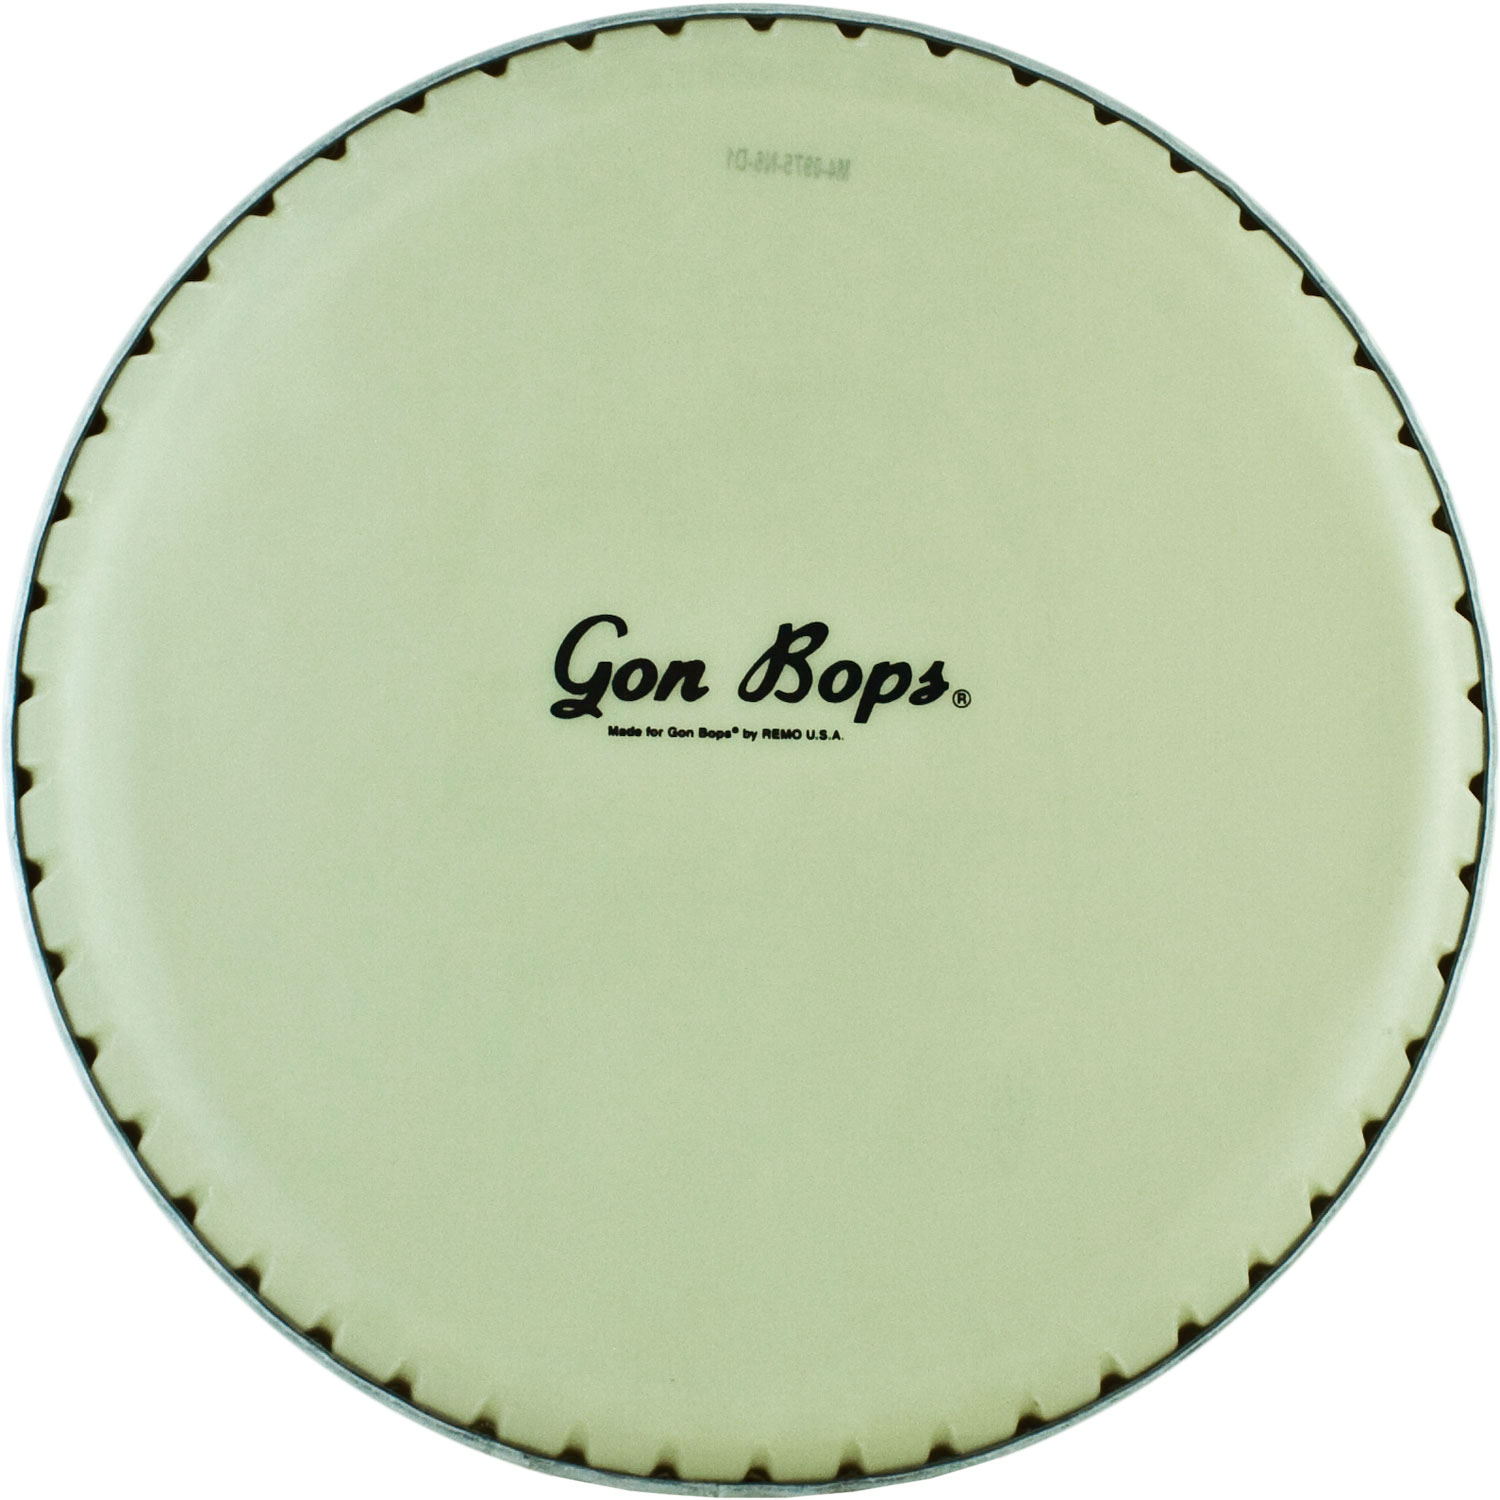 "Gon Bops 10.75"" Nuskyn Synthetic Conga Drum Head"